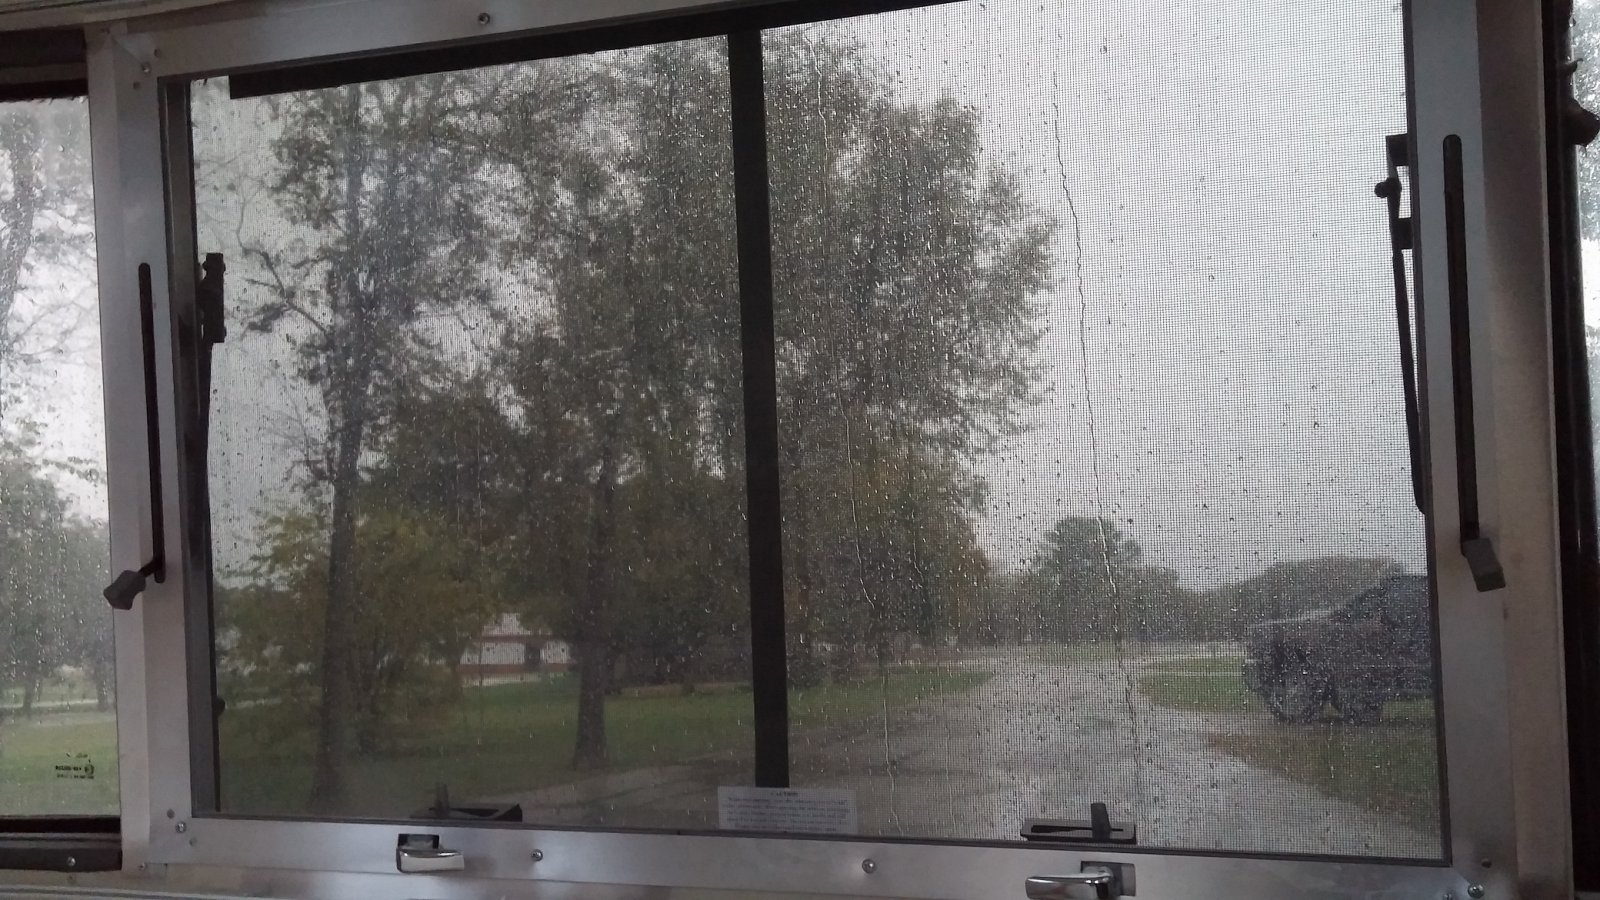 Click image for larger version  Name:LCRA Rainy Day 3.jpg Views:107 Size:326.8 KB ID:252950